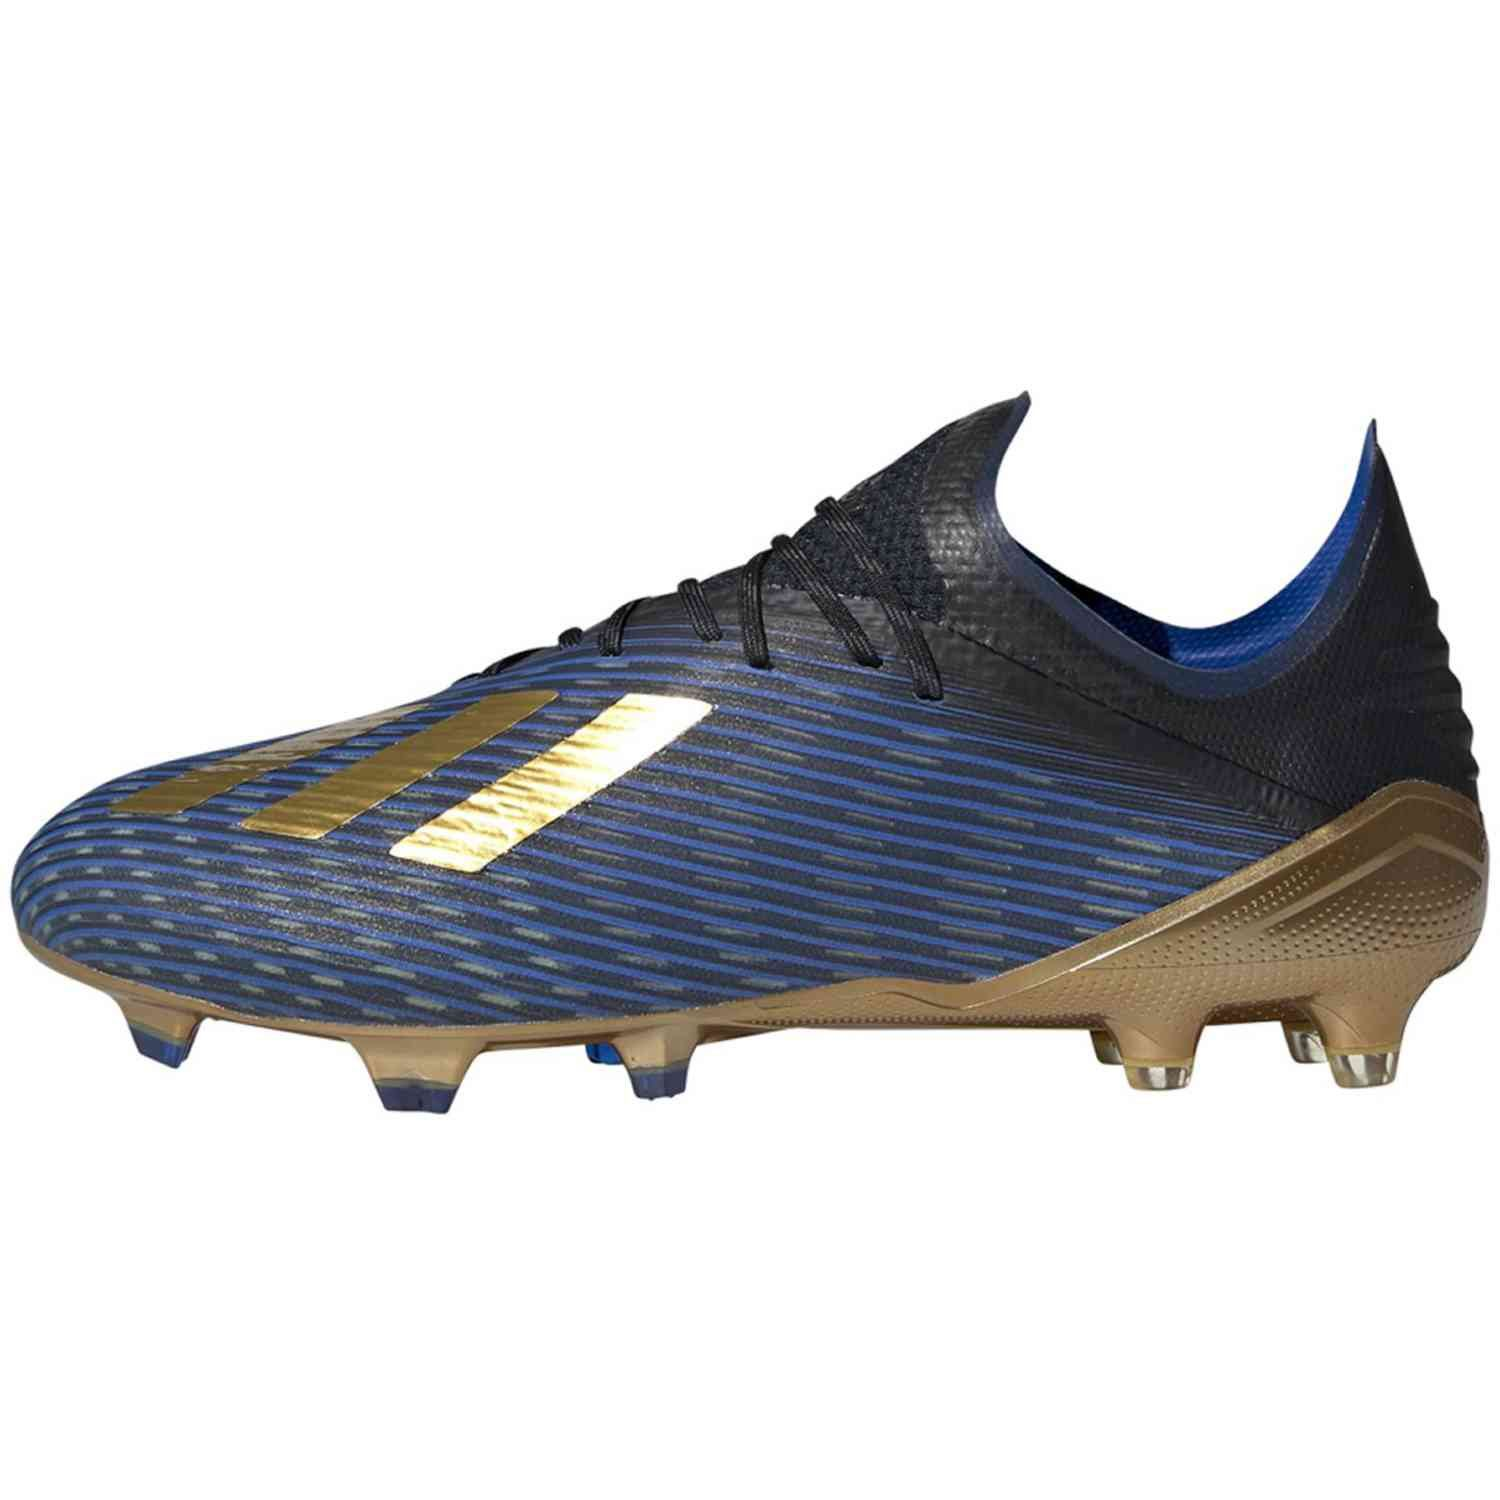 Adidas X 19 1 Fg Inner Game Soccerpro Soccer Boots Soccer Shoes Adidas